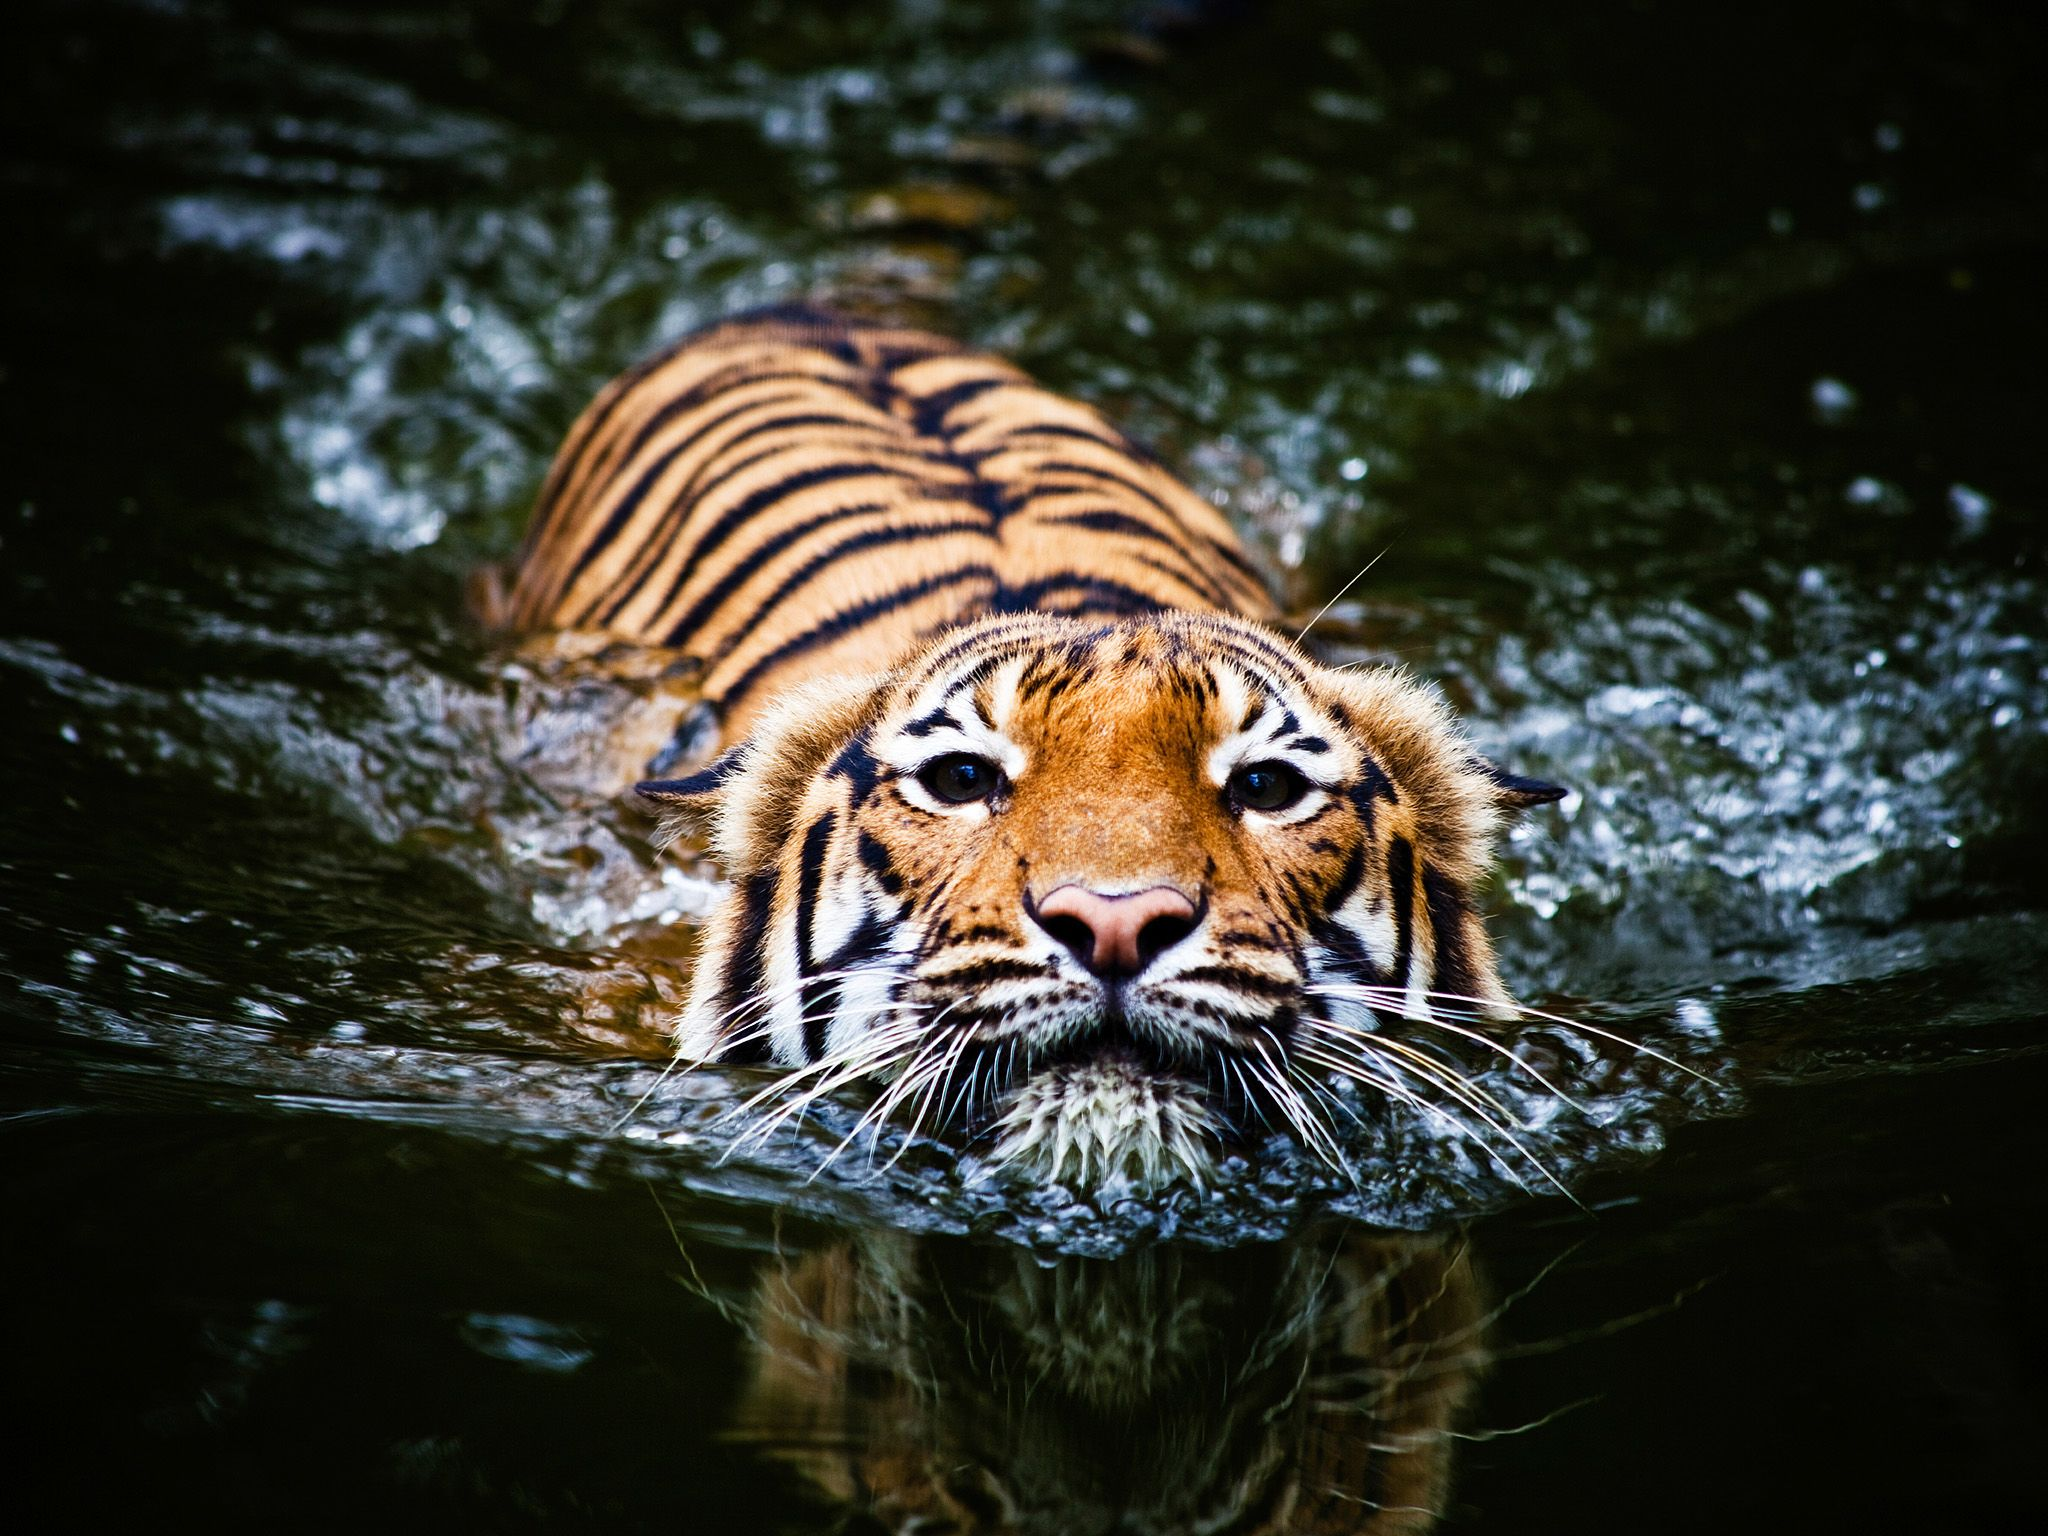 A tiger swimming, which they love to do, shows that they may have an advantage in a future water ... [Photo of the day - February 2015]